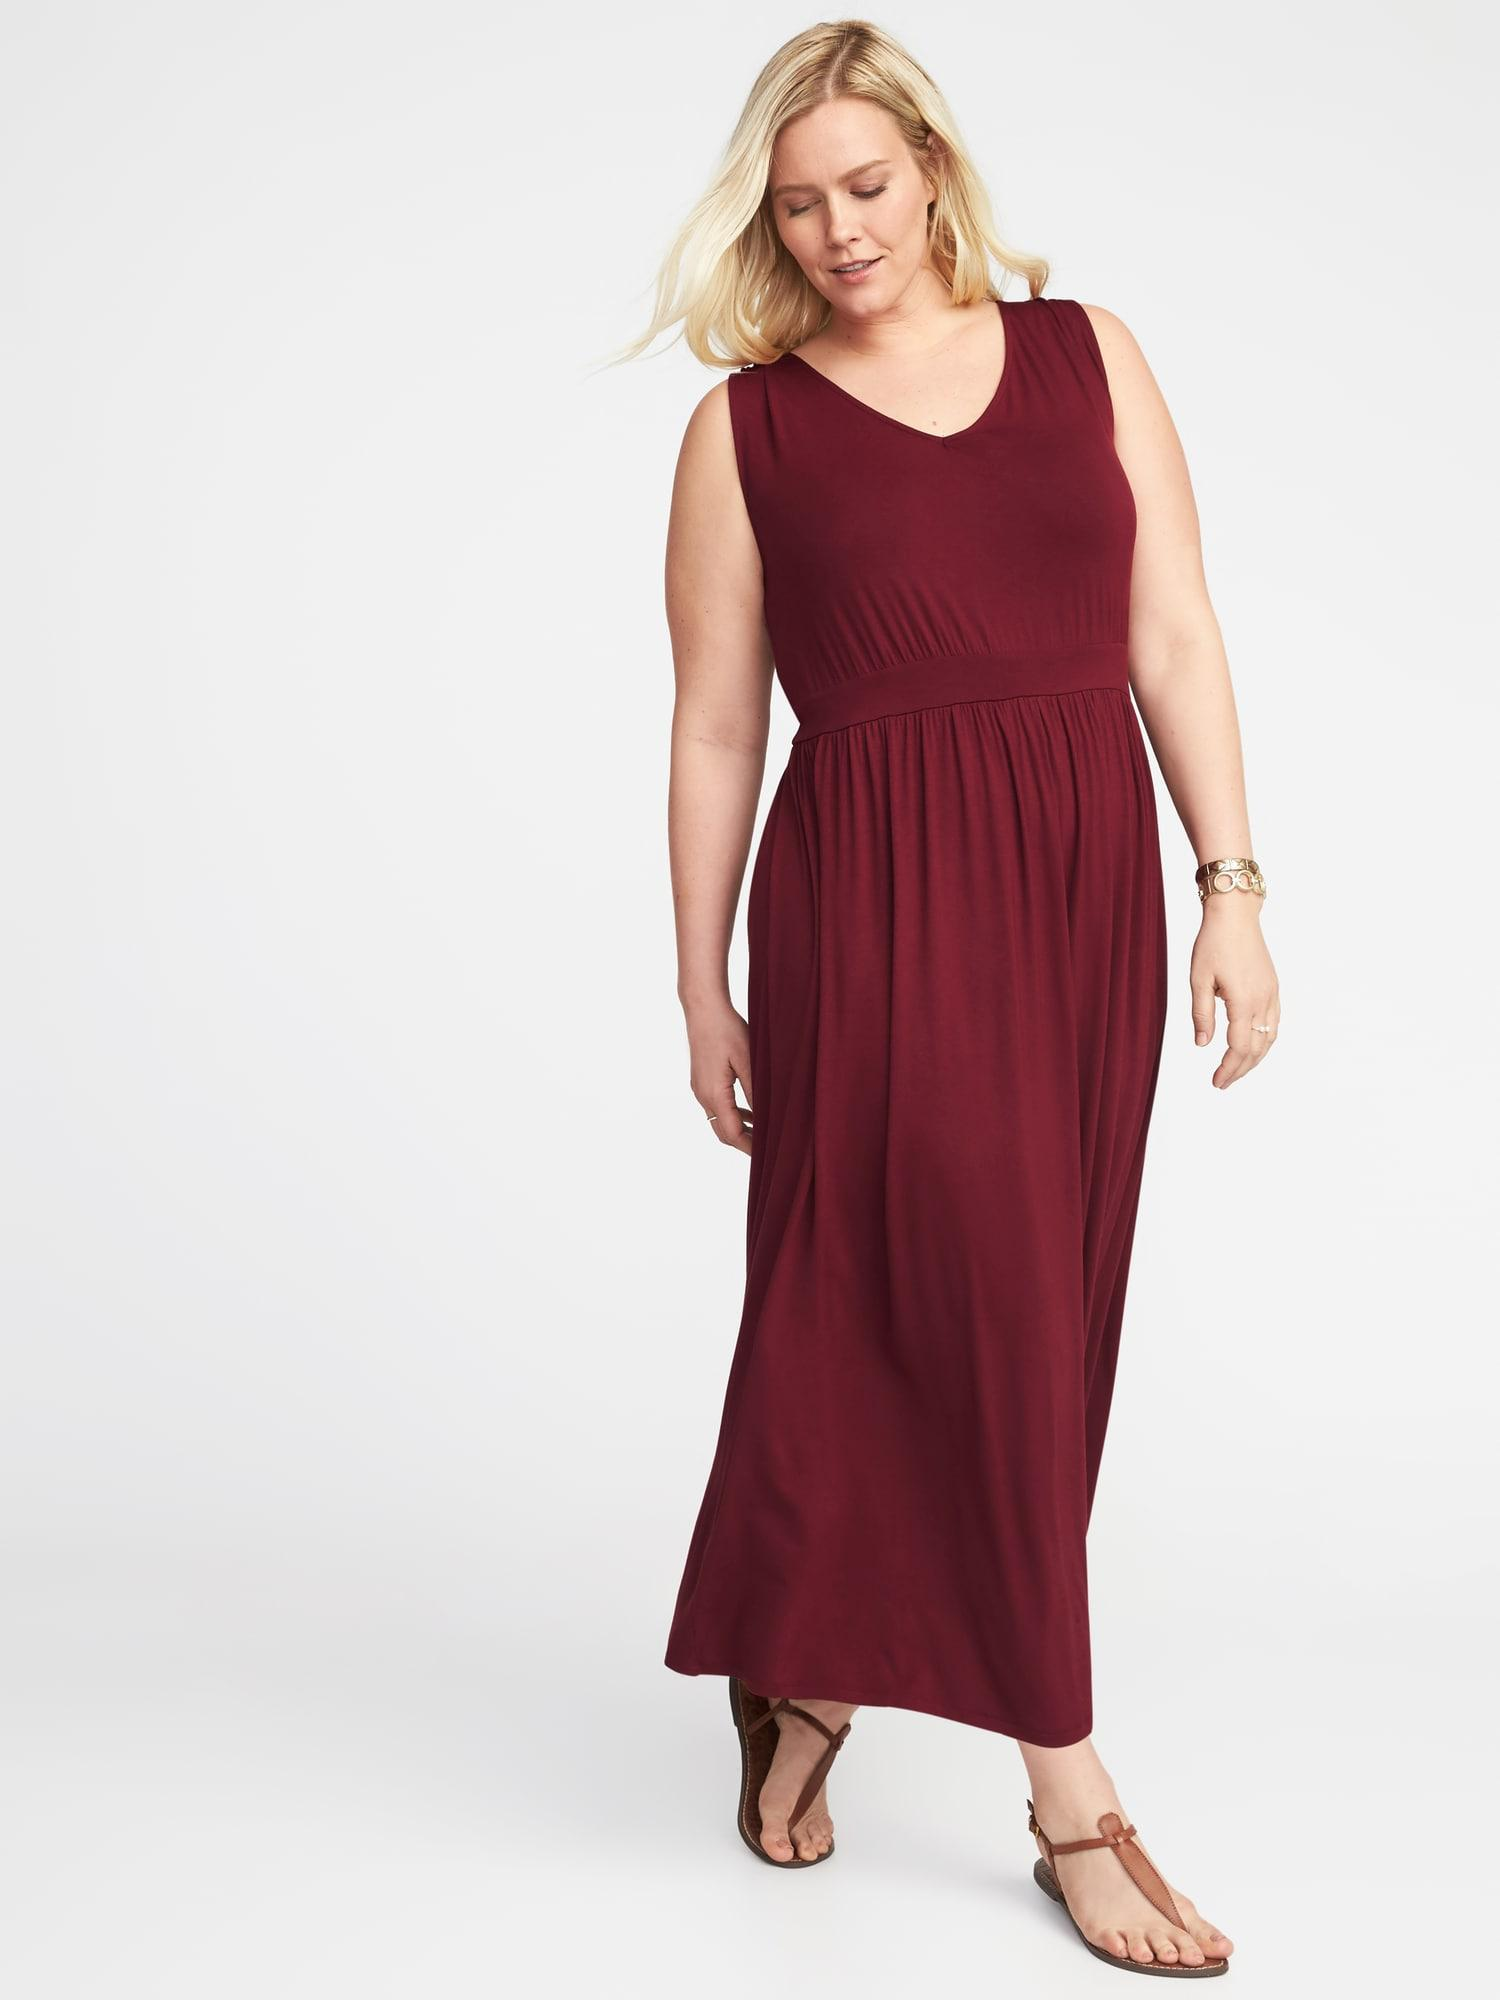 Maxi Dresses Plus Size Old Navy | Huston Fislar Photography